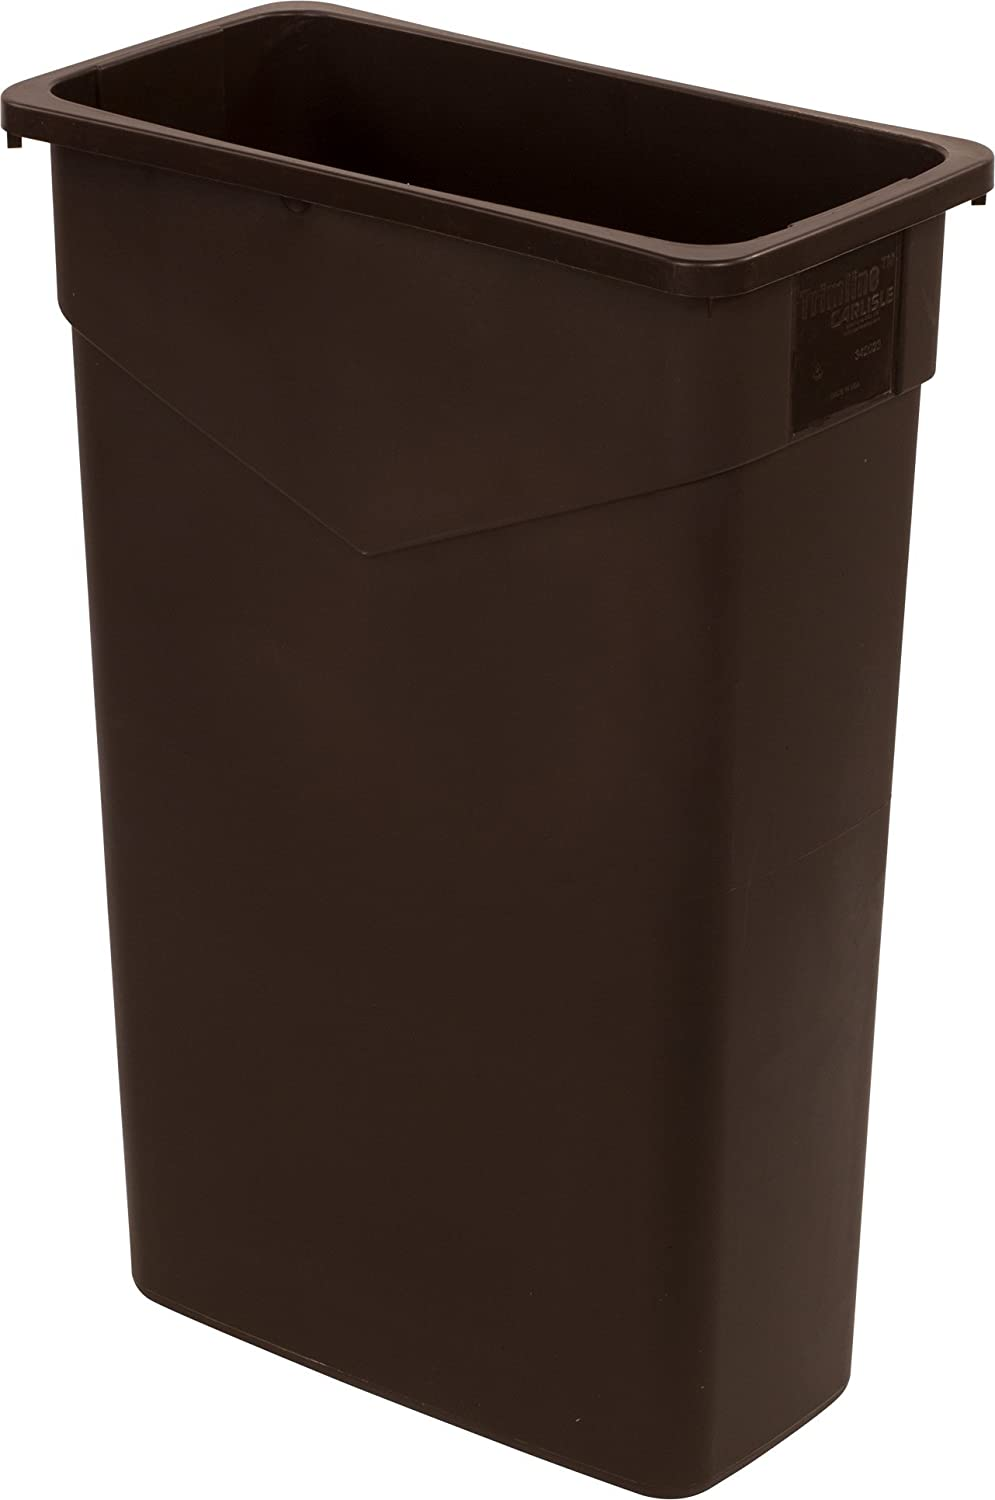 Carlisle 34202369 TrimLine High order Rectangle Waste Container Trash Louisville-Jefferson County Mall O Can